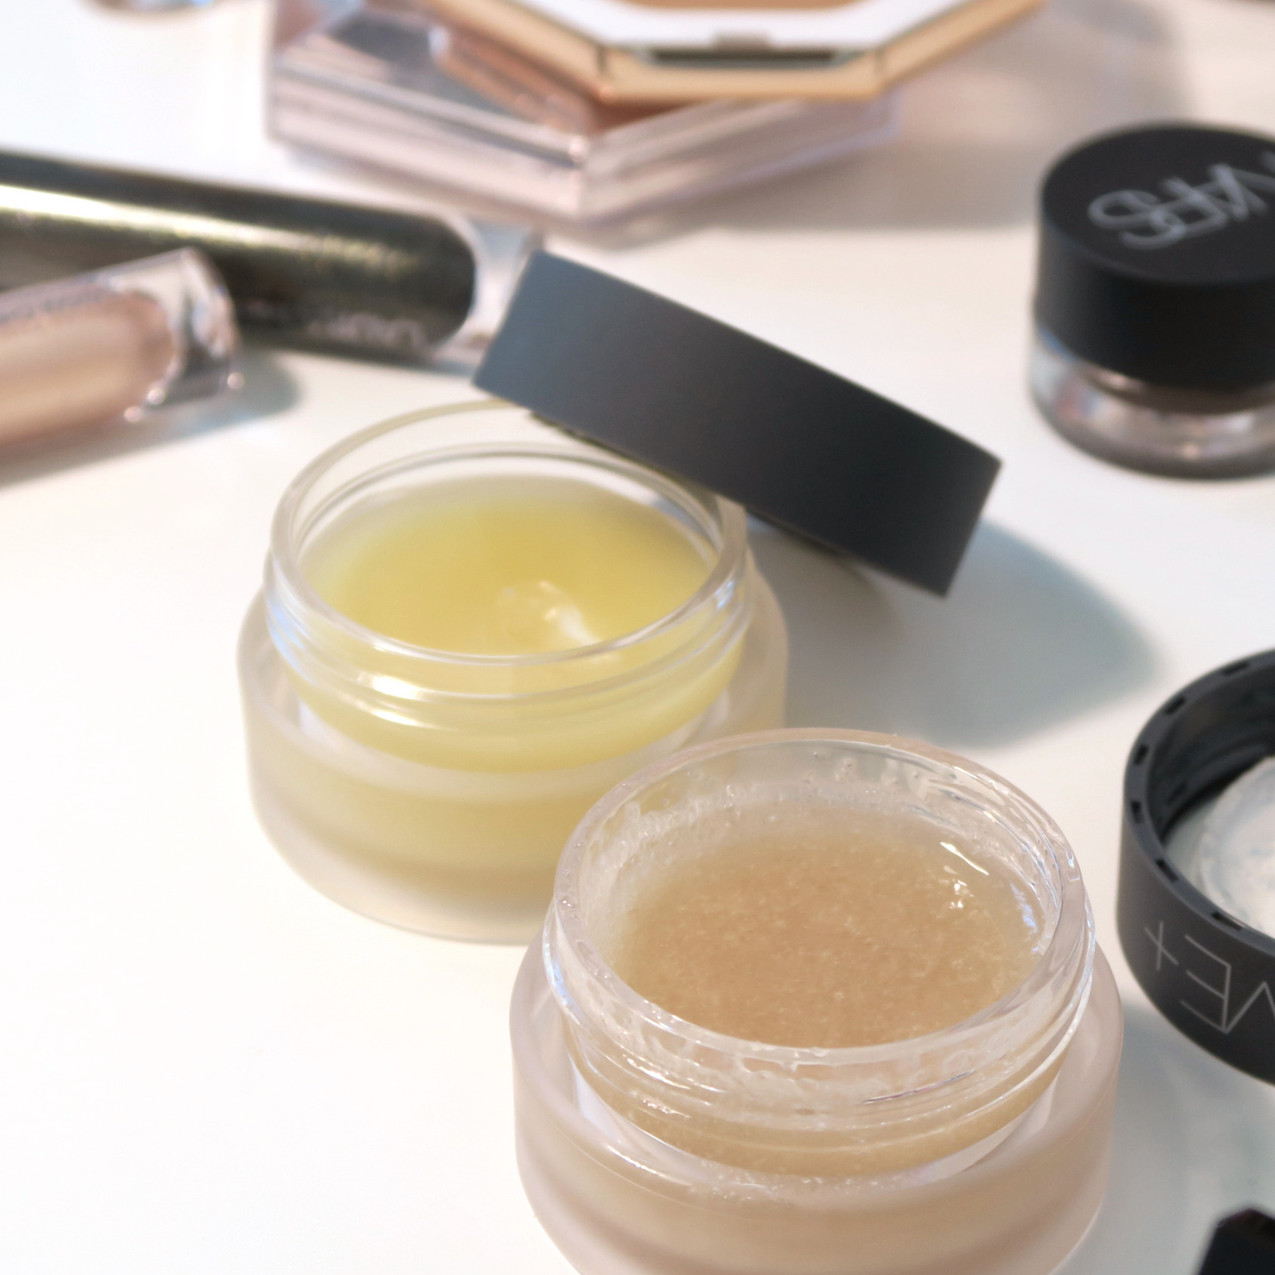 Bite Beauty Agave+ Lip Therapy